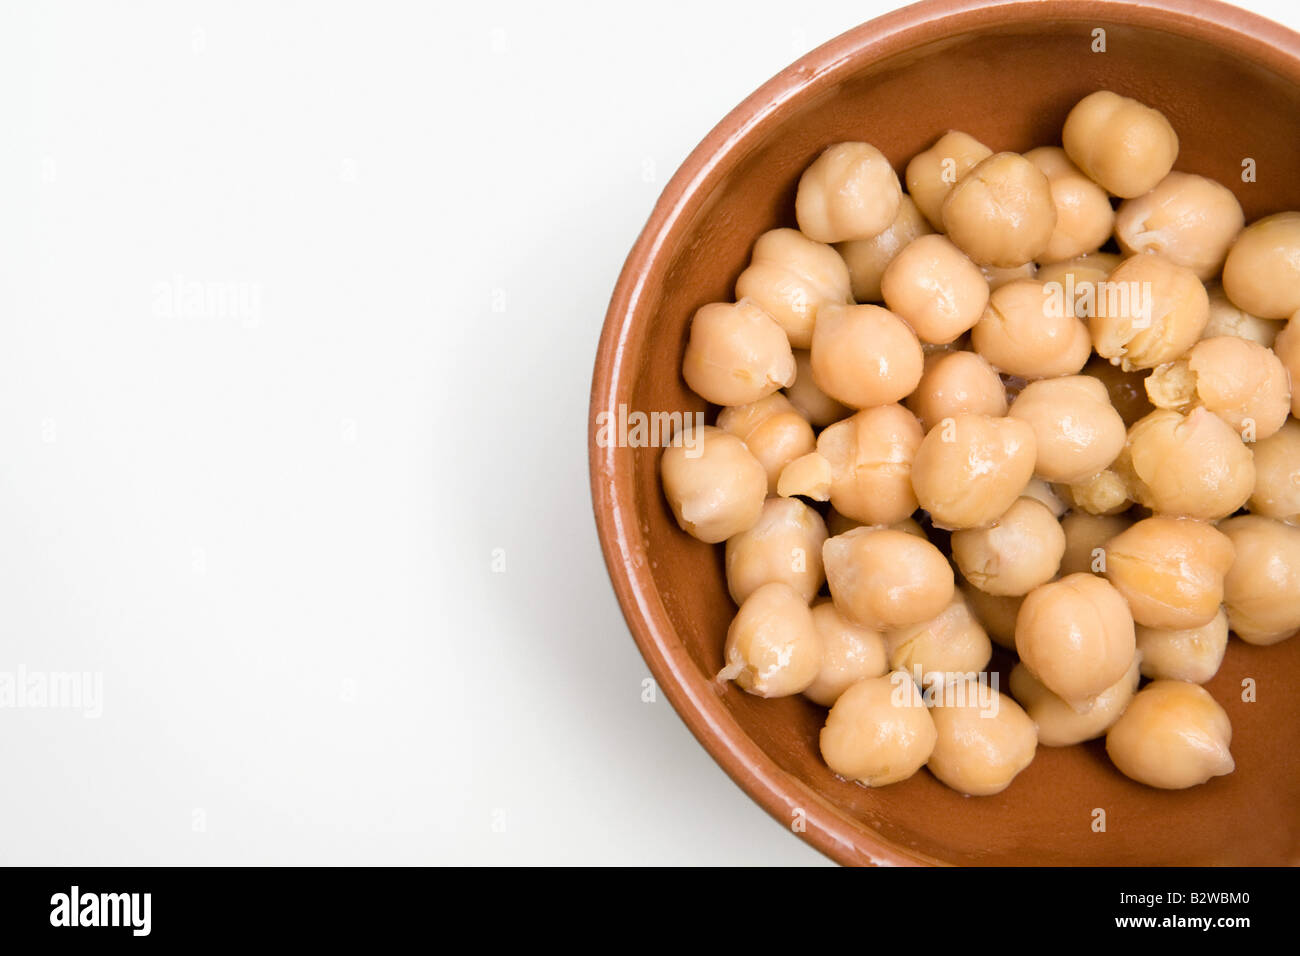 Chick peas in a dish - Stock Image